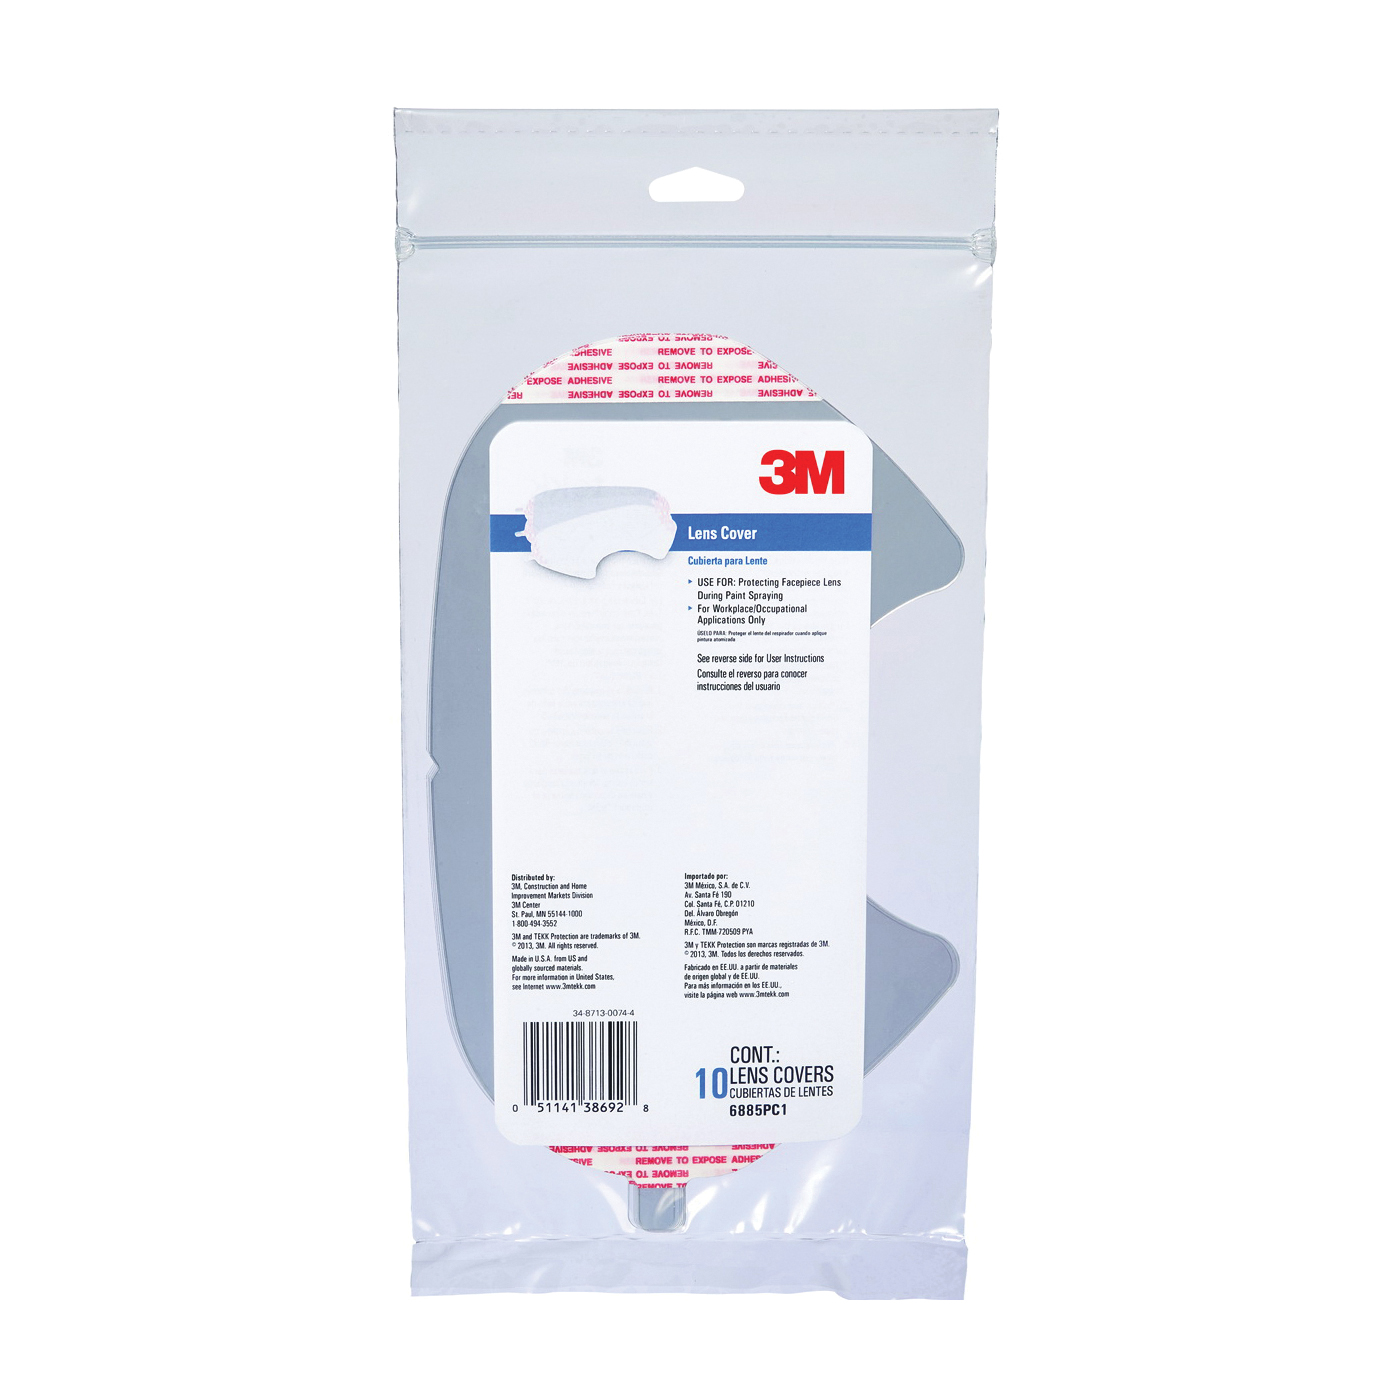 Picture of 3M 6885PC1-B10 Face Shield Cover